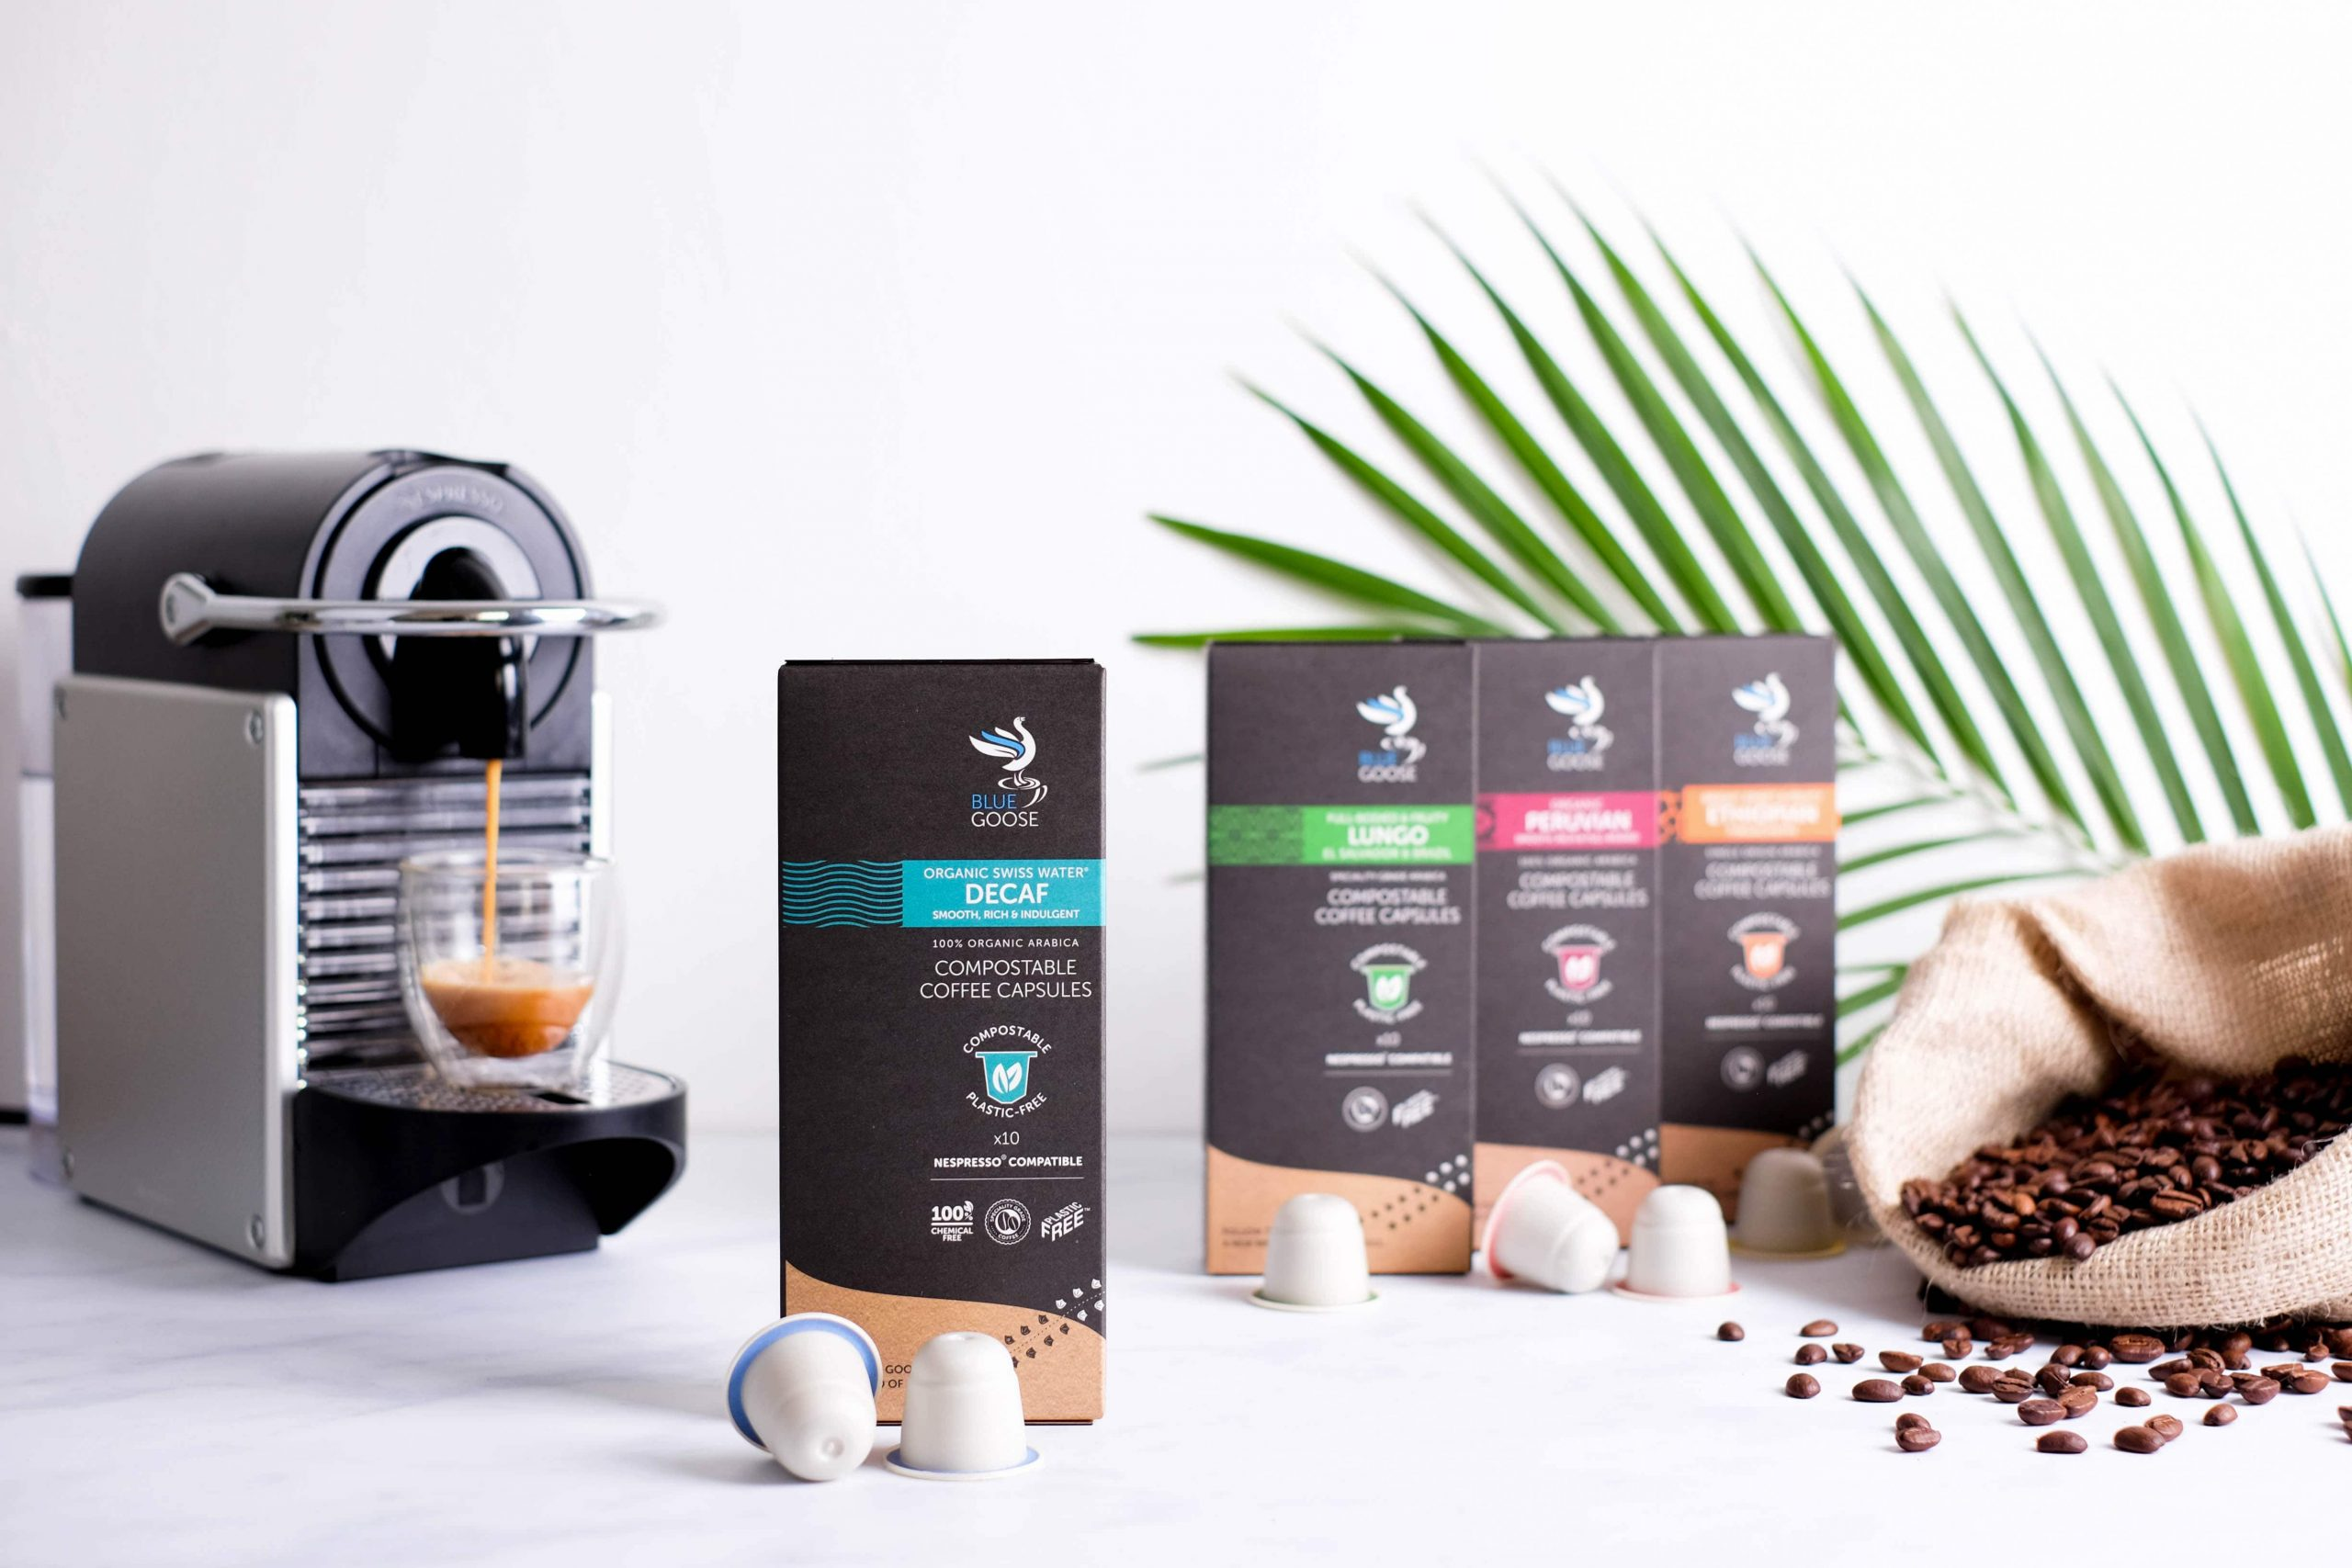 Organic Swiss Water Decaf Compostable Nespresso® Coffee Capsules